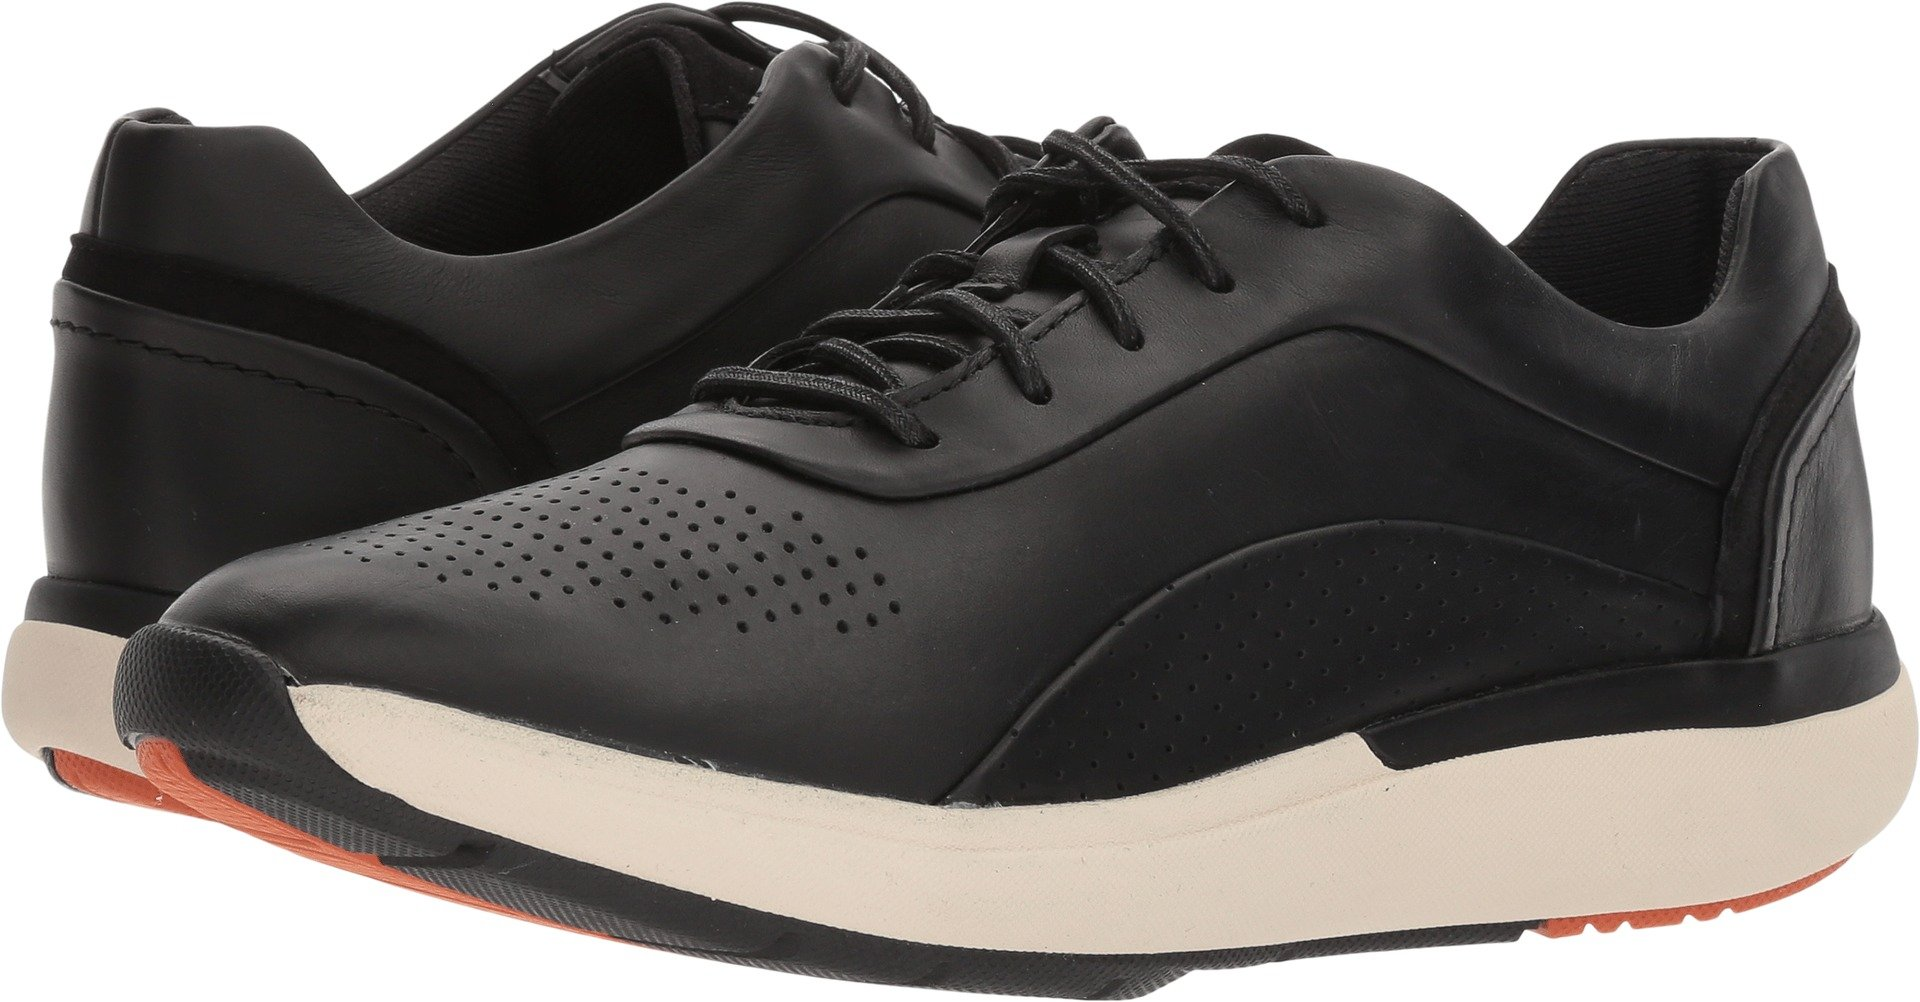 CLARKS Womens Un Cruise Lace (Wave) Sneaker, Black Leather, Size 7.5